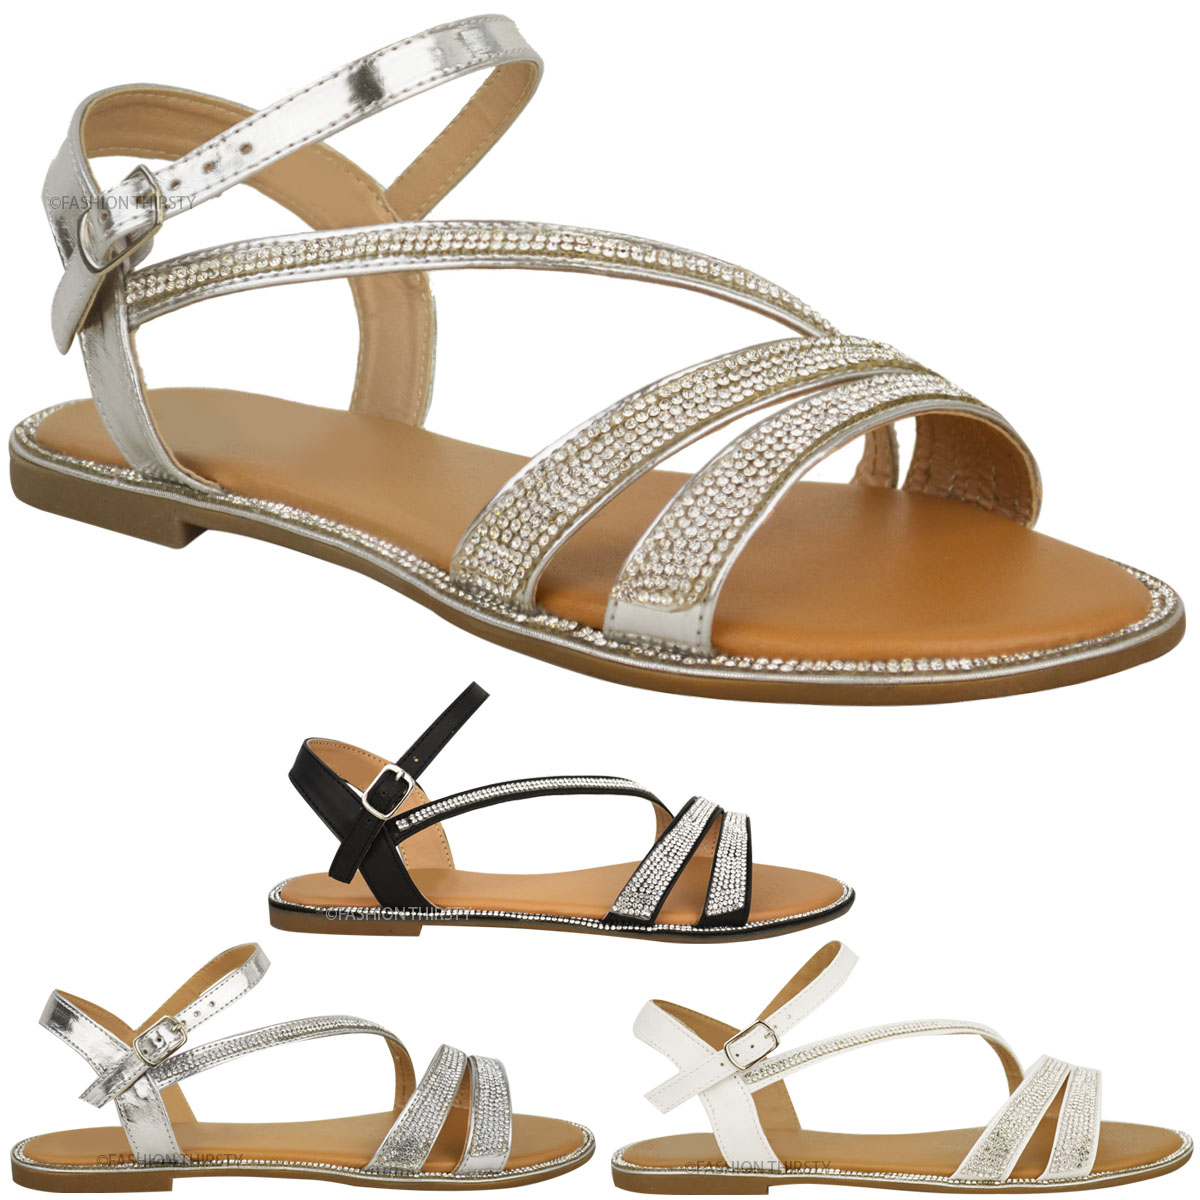 Create a sizzling summer look with our collection of women's sandals. Perfect for pairing with your favourite maxi dress, our strappy sandals are available in striking metallic, leather and suedette finishes.